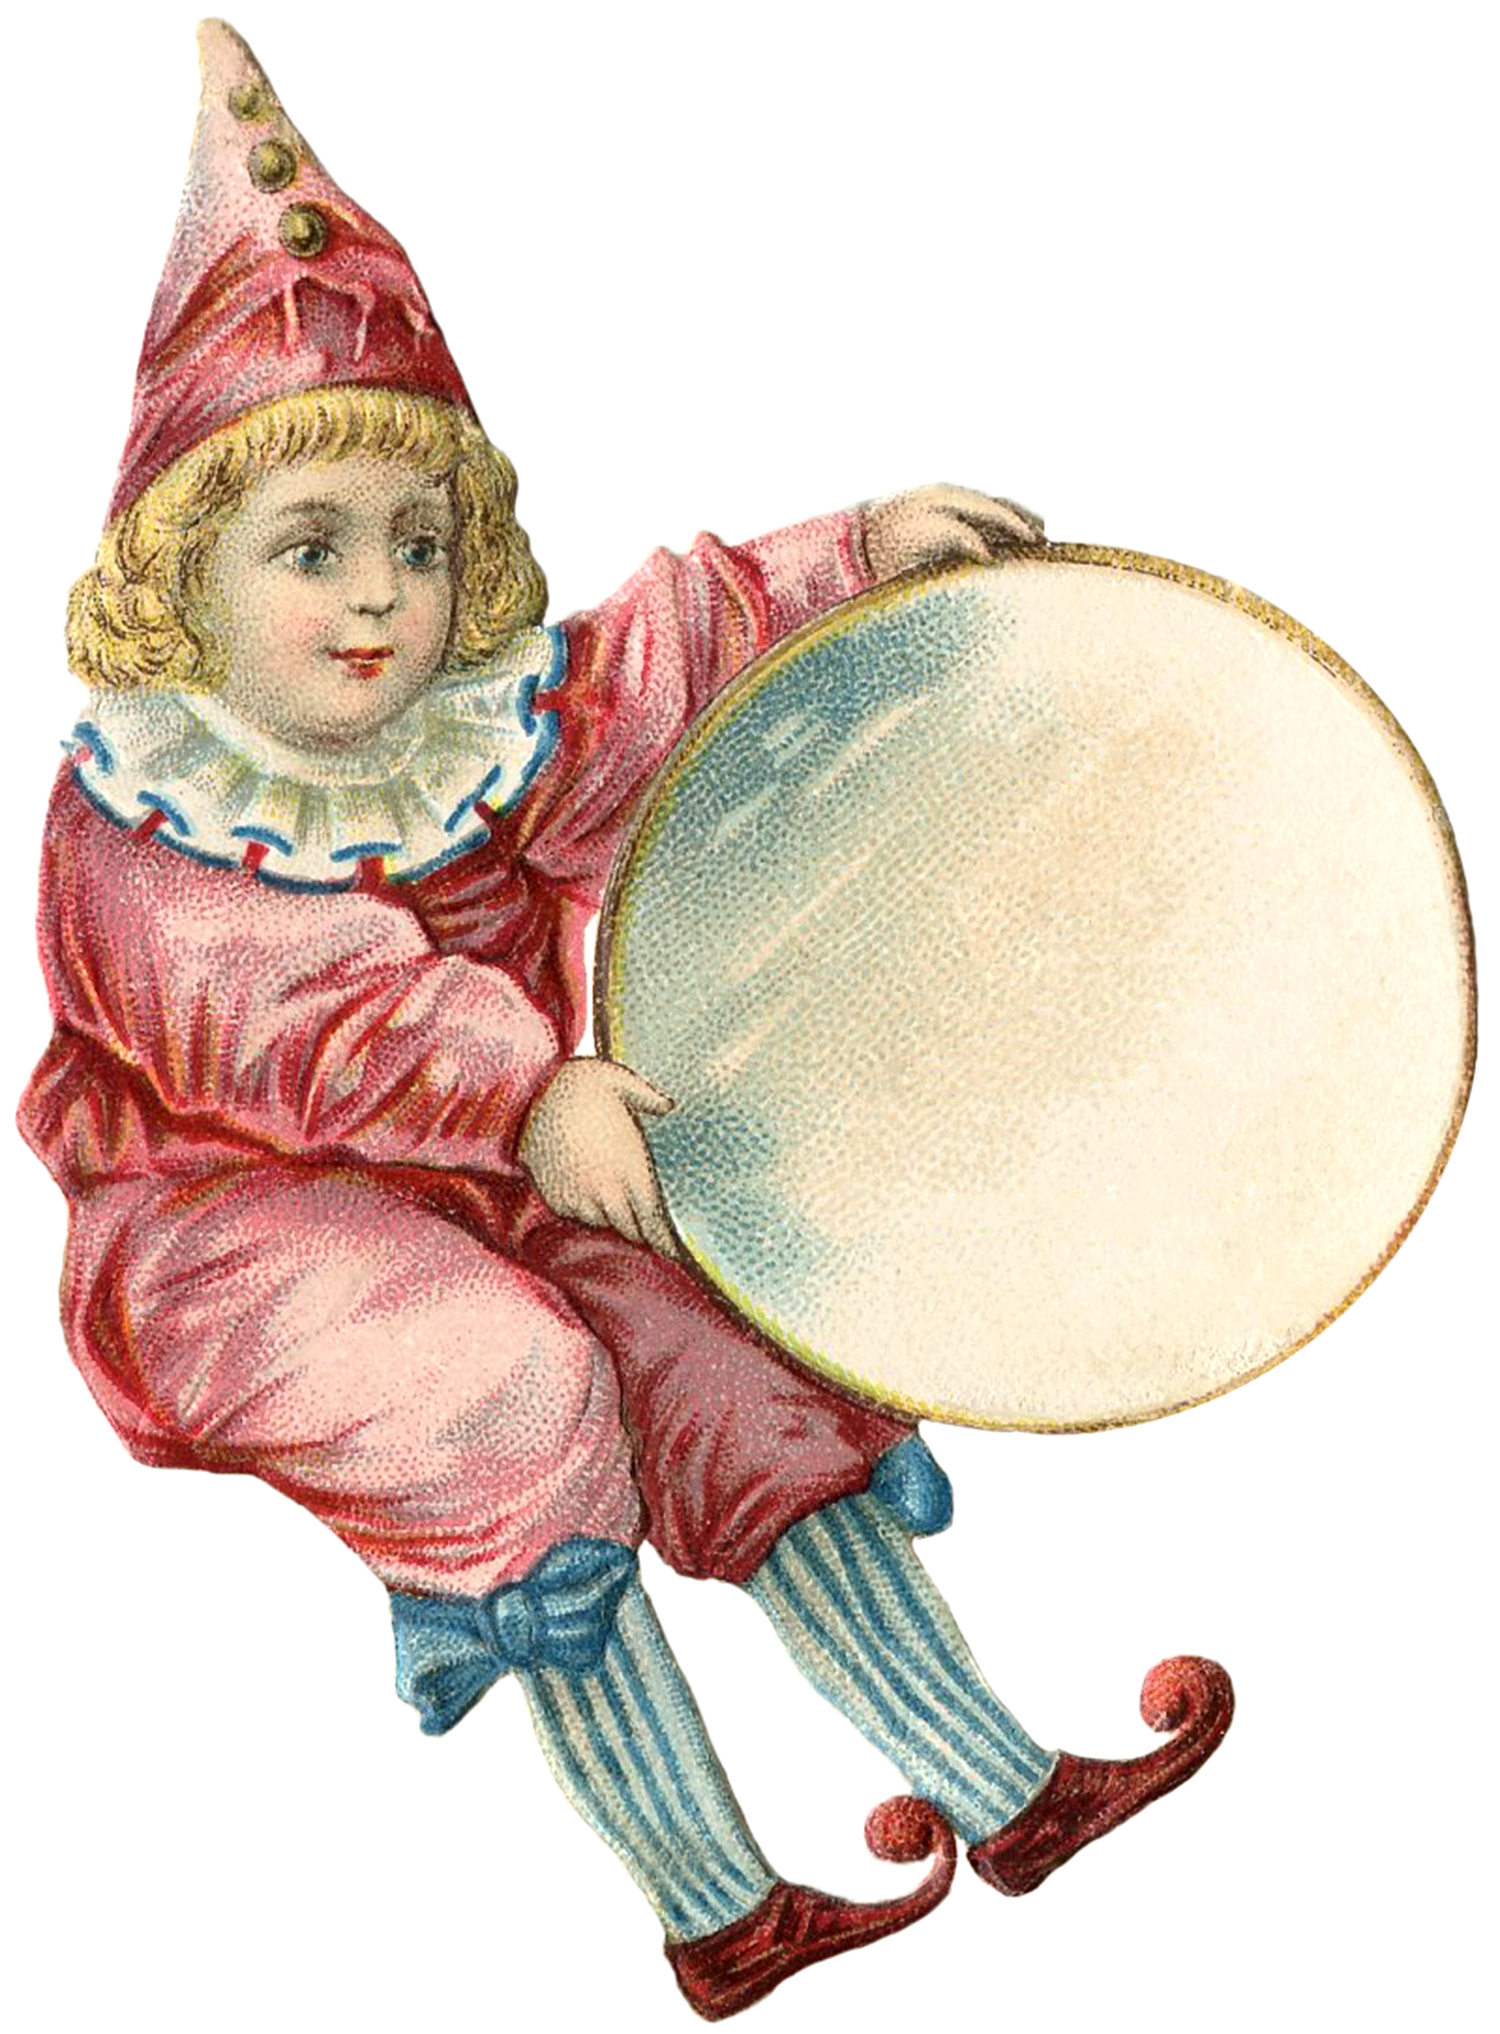 http://thegraphicsfairy.com/wp-content/uploads/2013/07/Antique-Clown-Girl-Image-GraphicsFairy.jpg